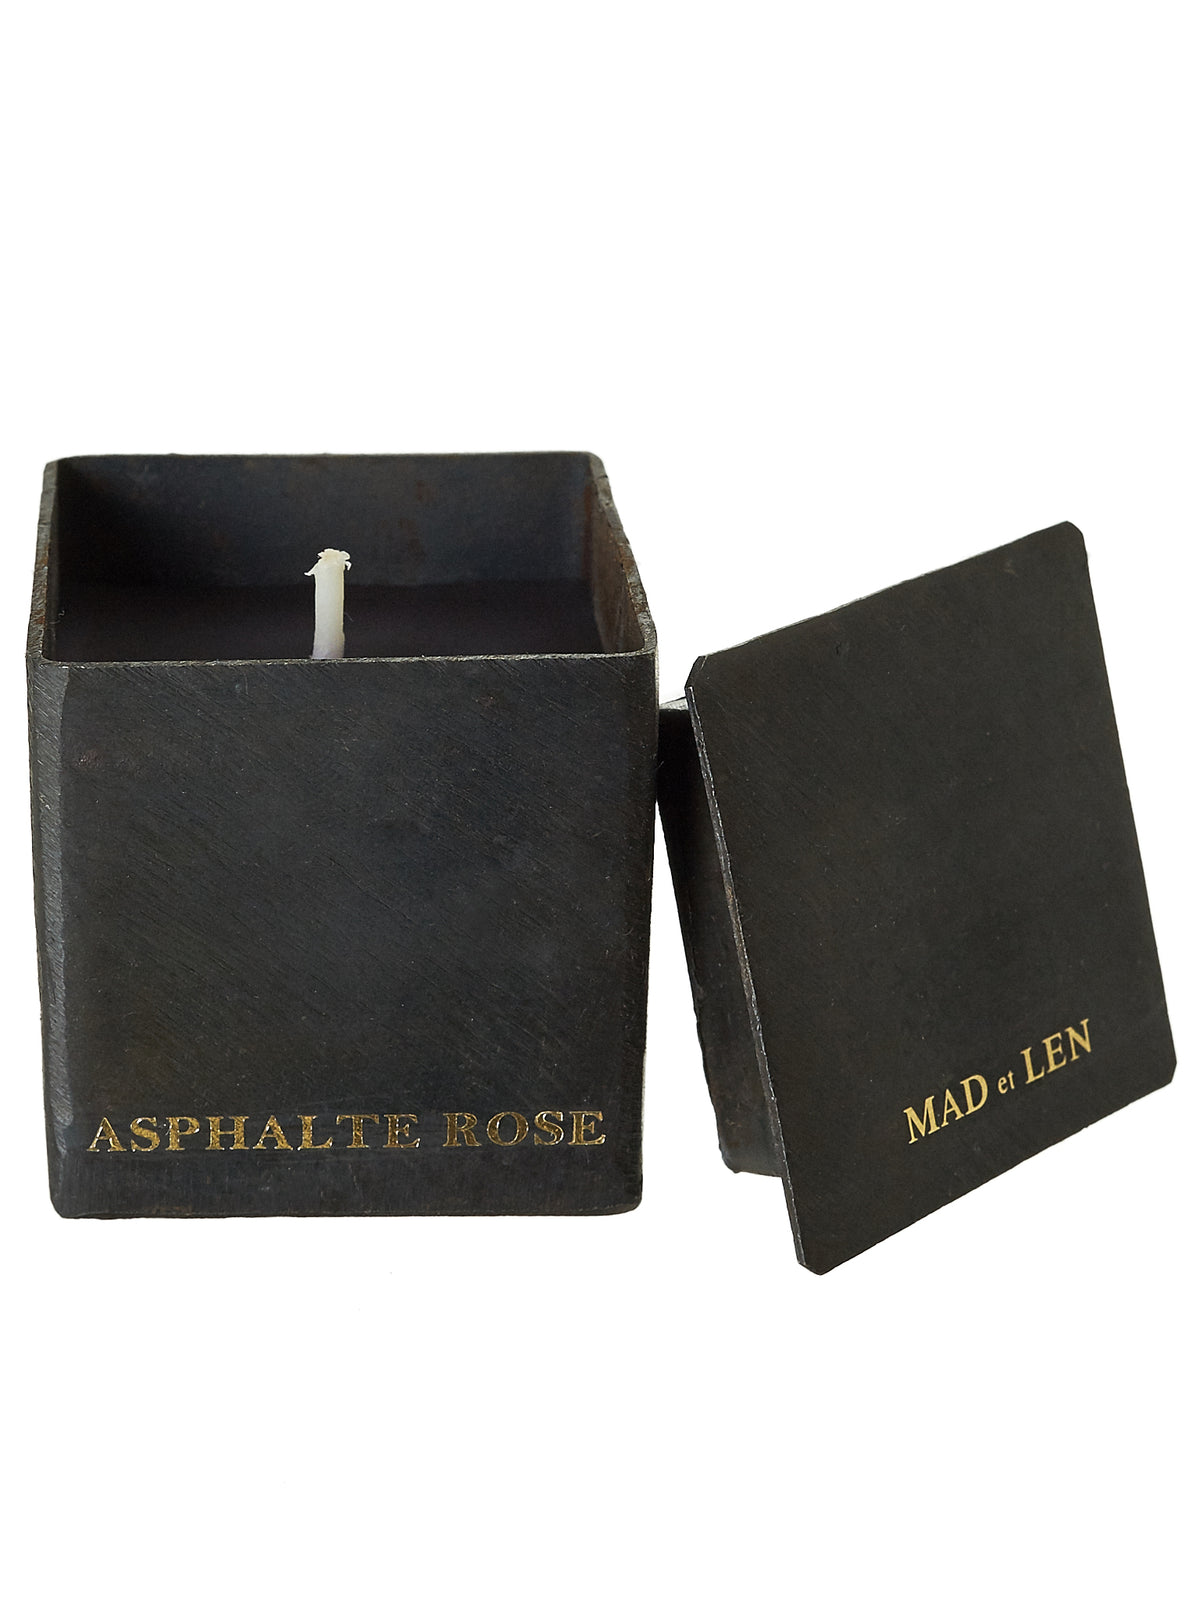 'Asphalte Rose' Short Block Candle (ML-BCMN-AS-ASPHALTE-ROSE-5X5)